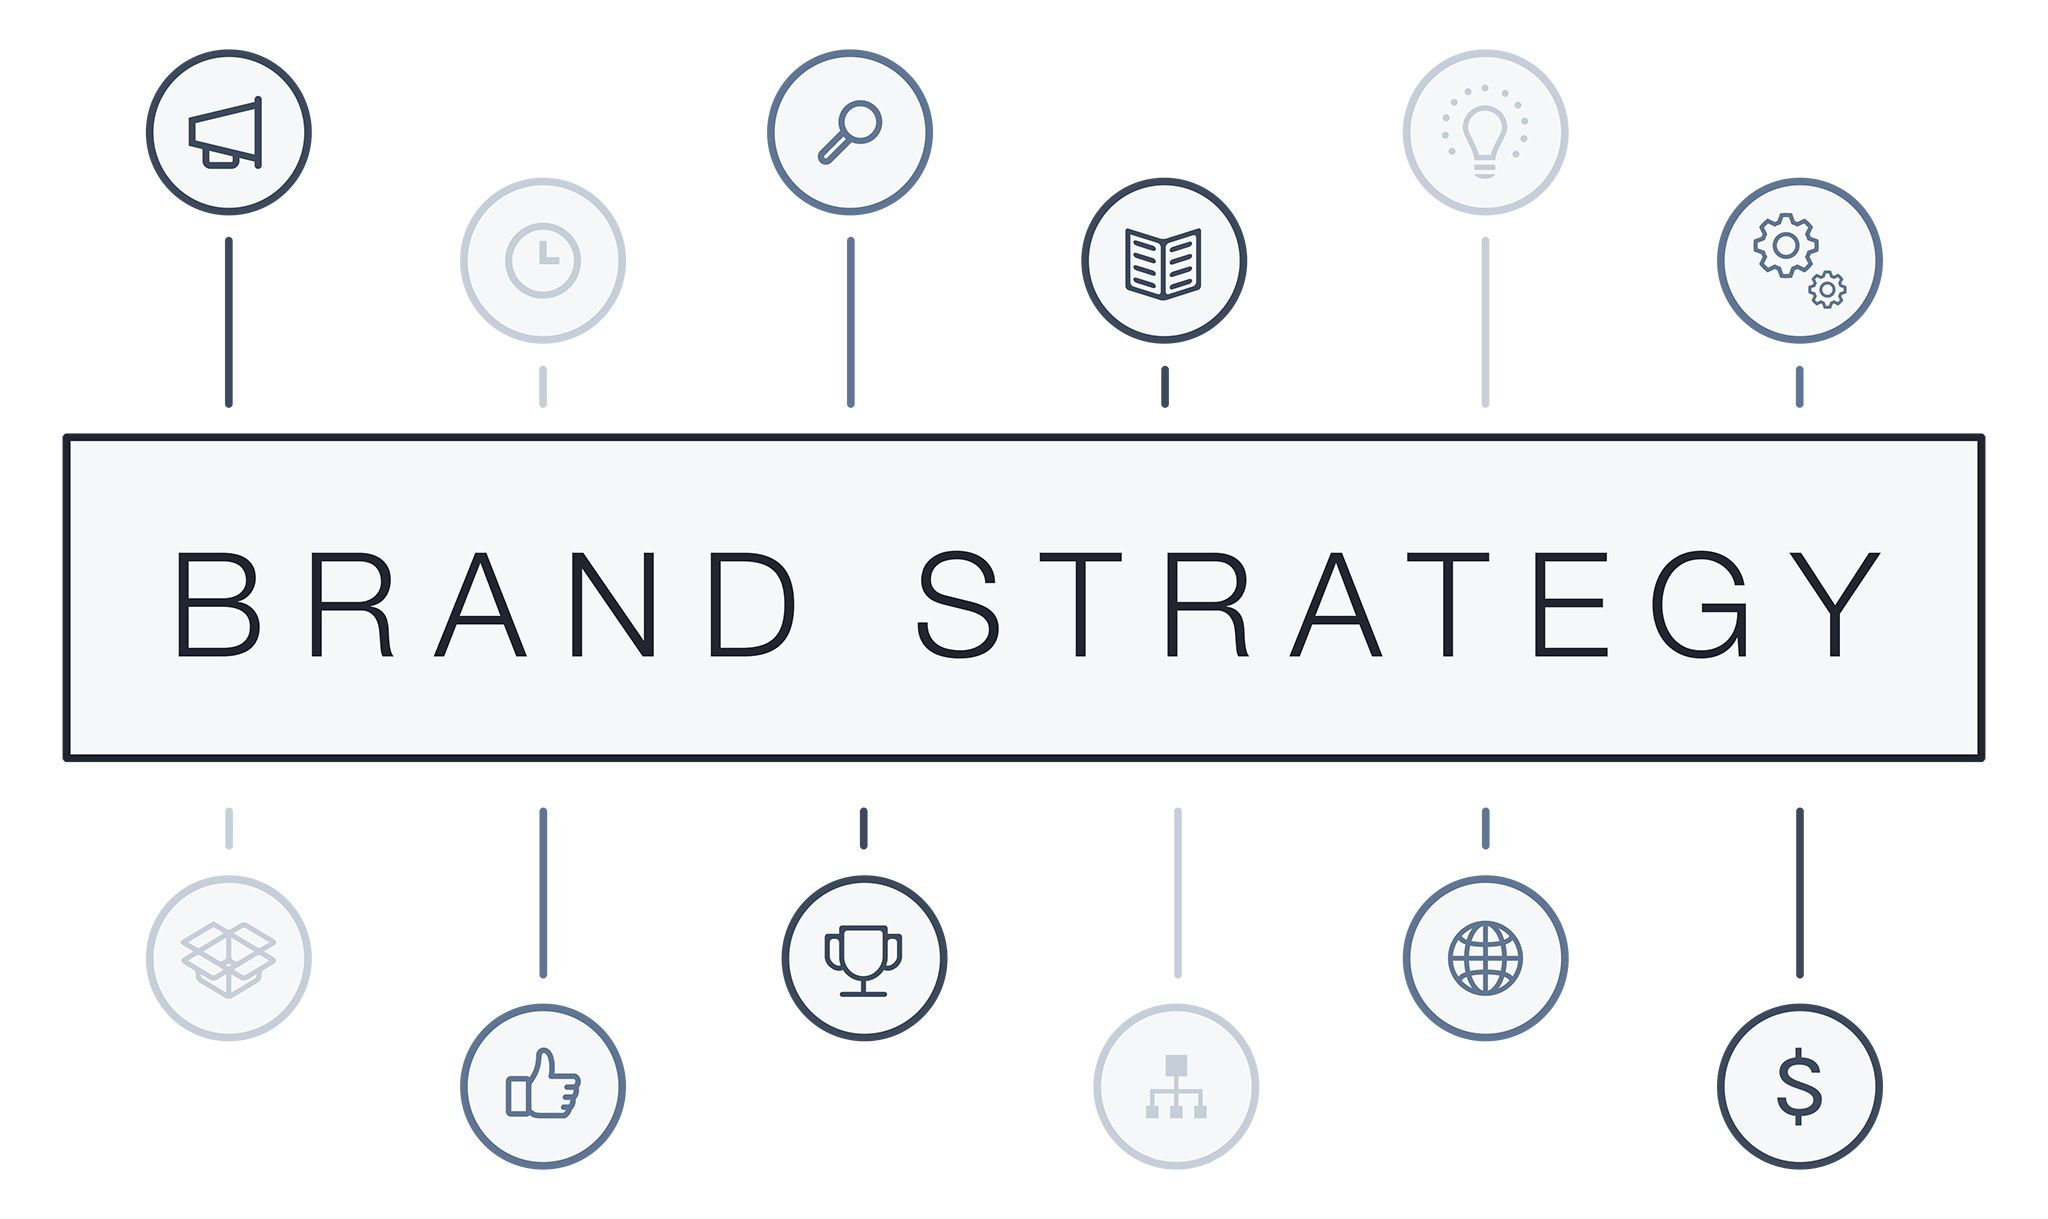 Brand Management Software Supports Brand Strategy